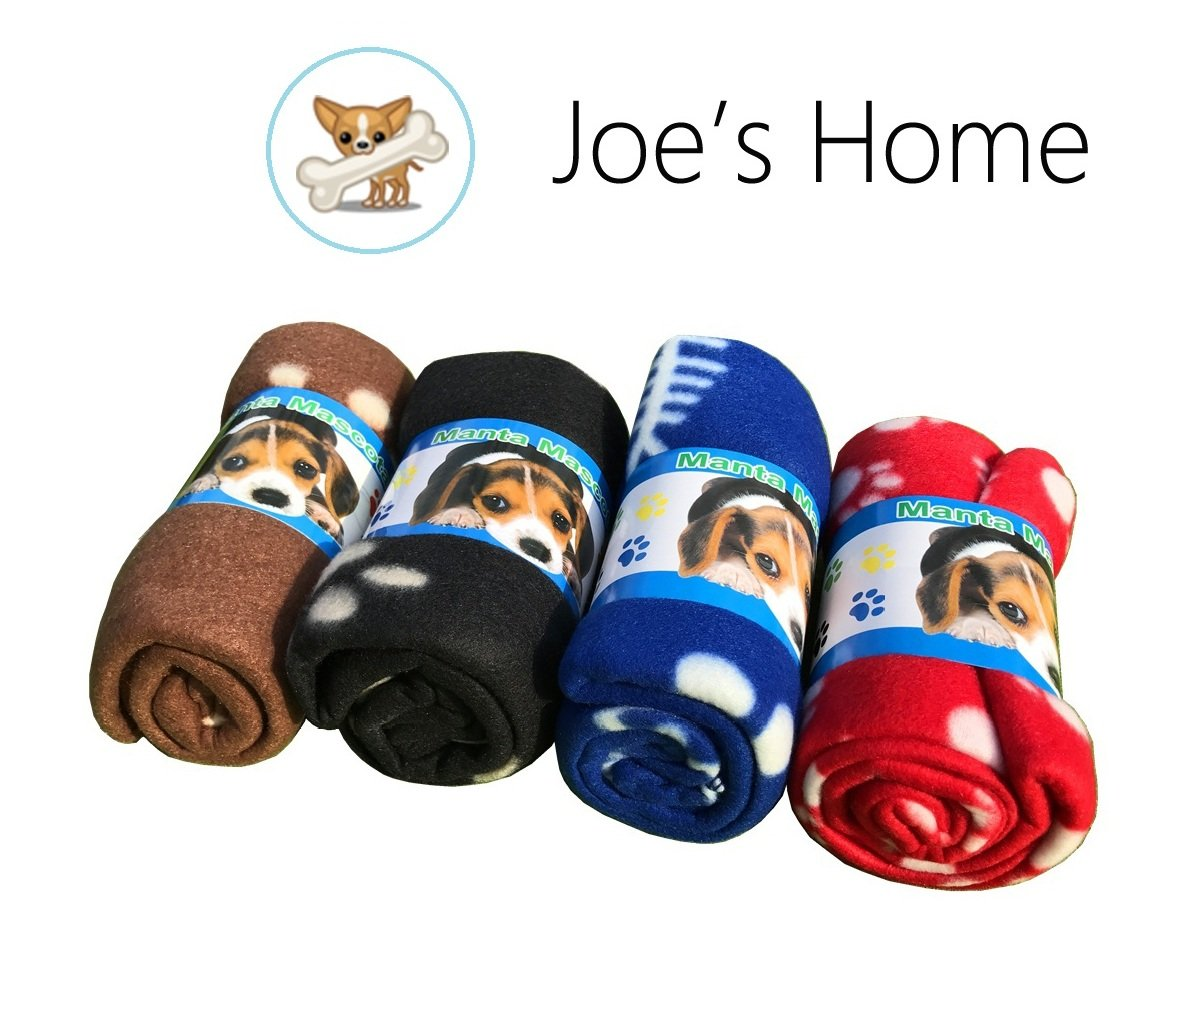 Pet Puppy Dog Blanket for Small Medium Large Dogs, 4 Pack - Red Blue Black Brown, Warm Soft Cozy Cat Dog Blankets and Throws Winter Pet Sleep Mat Pad Bed Cover with Paw Print (L - 32.3'' x 43.3'')